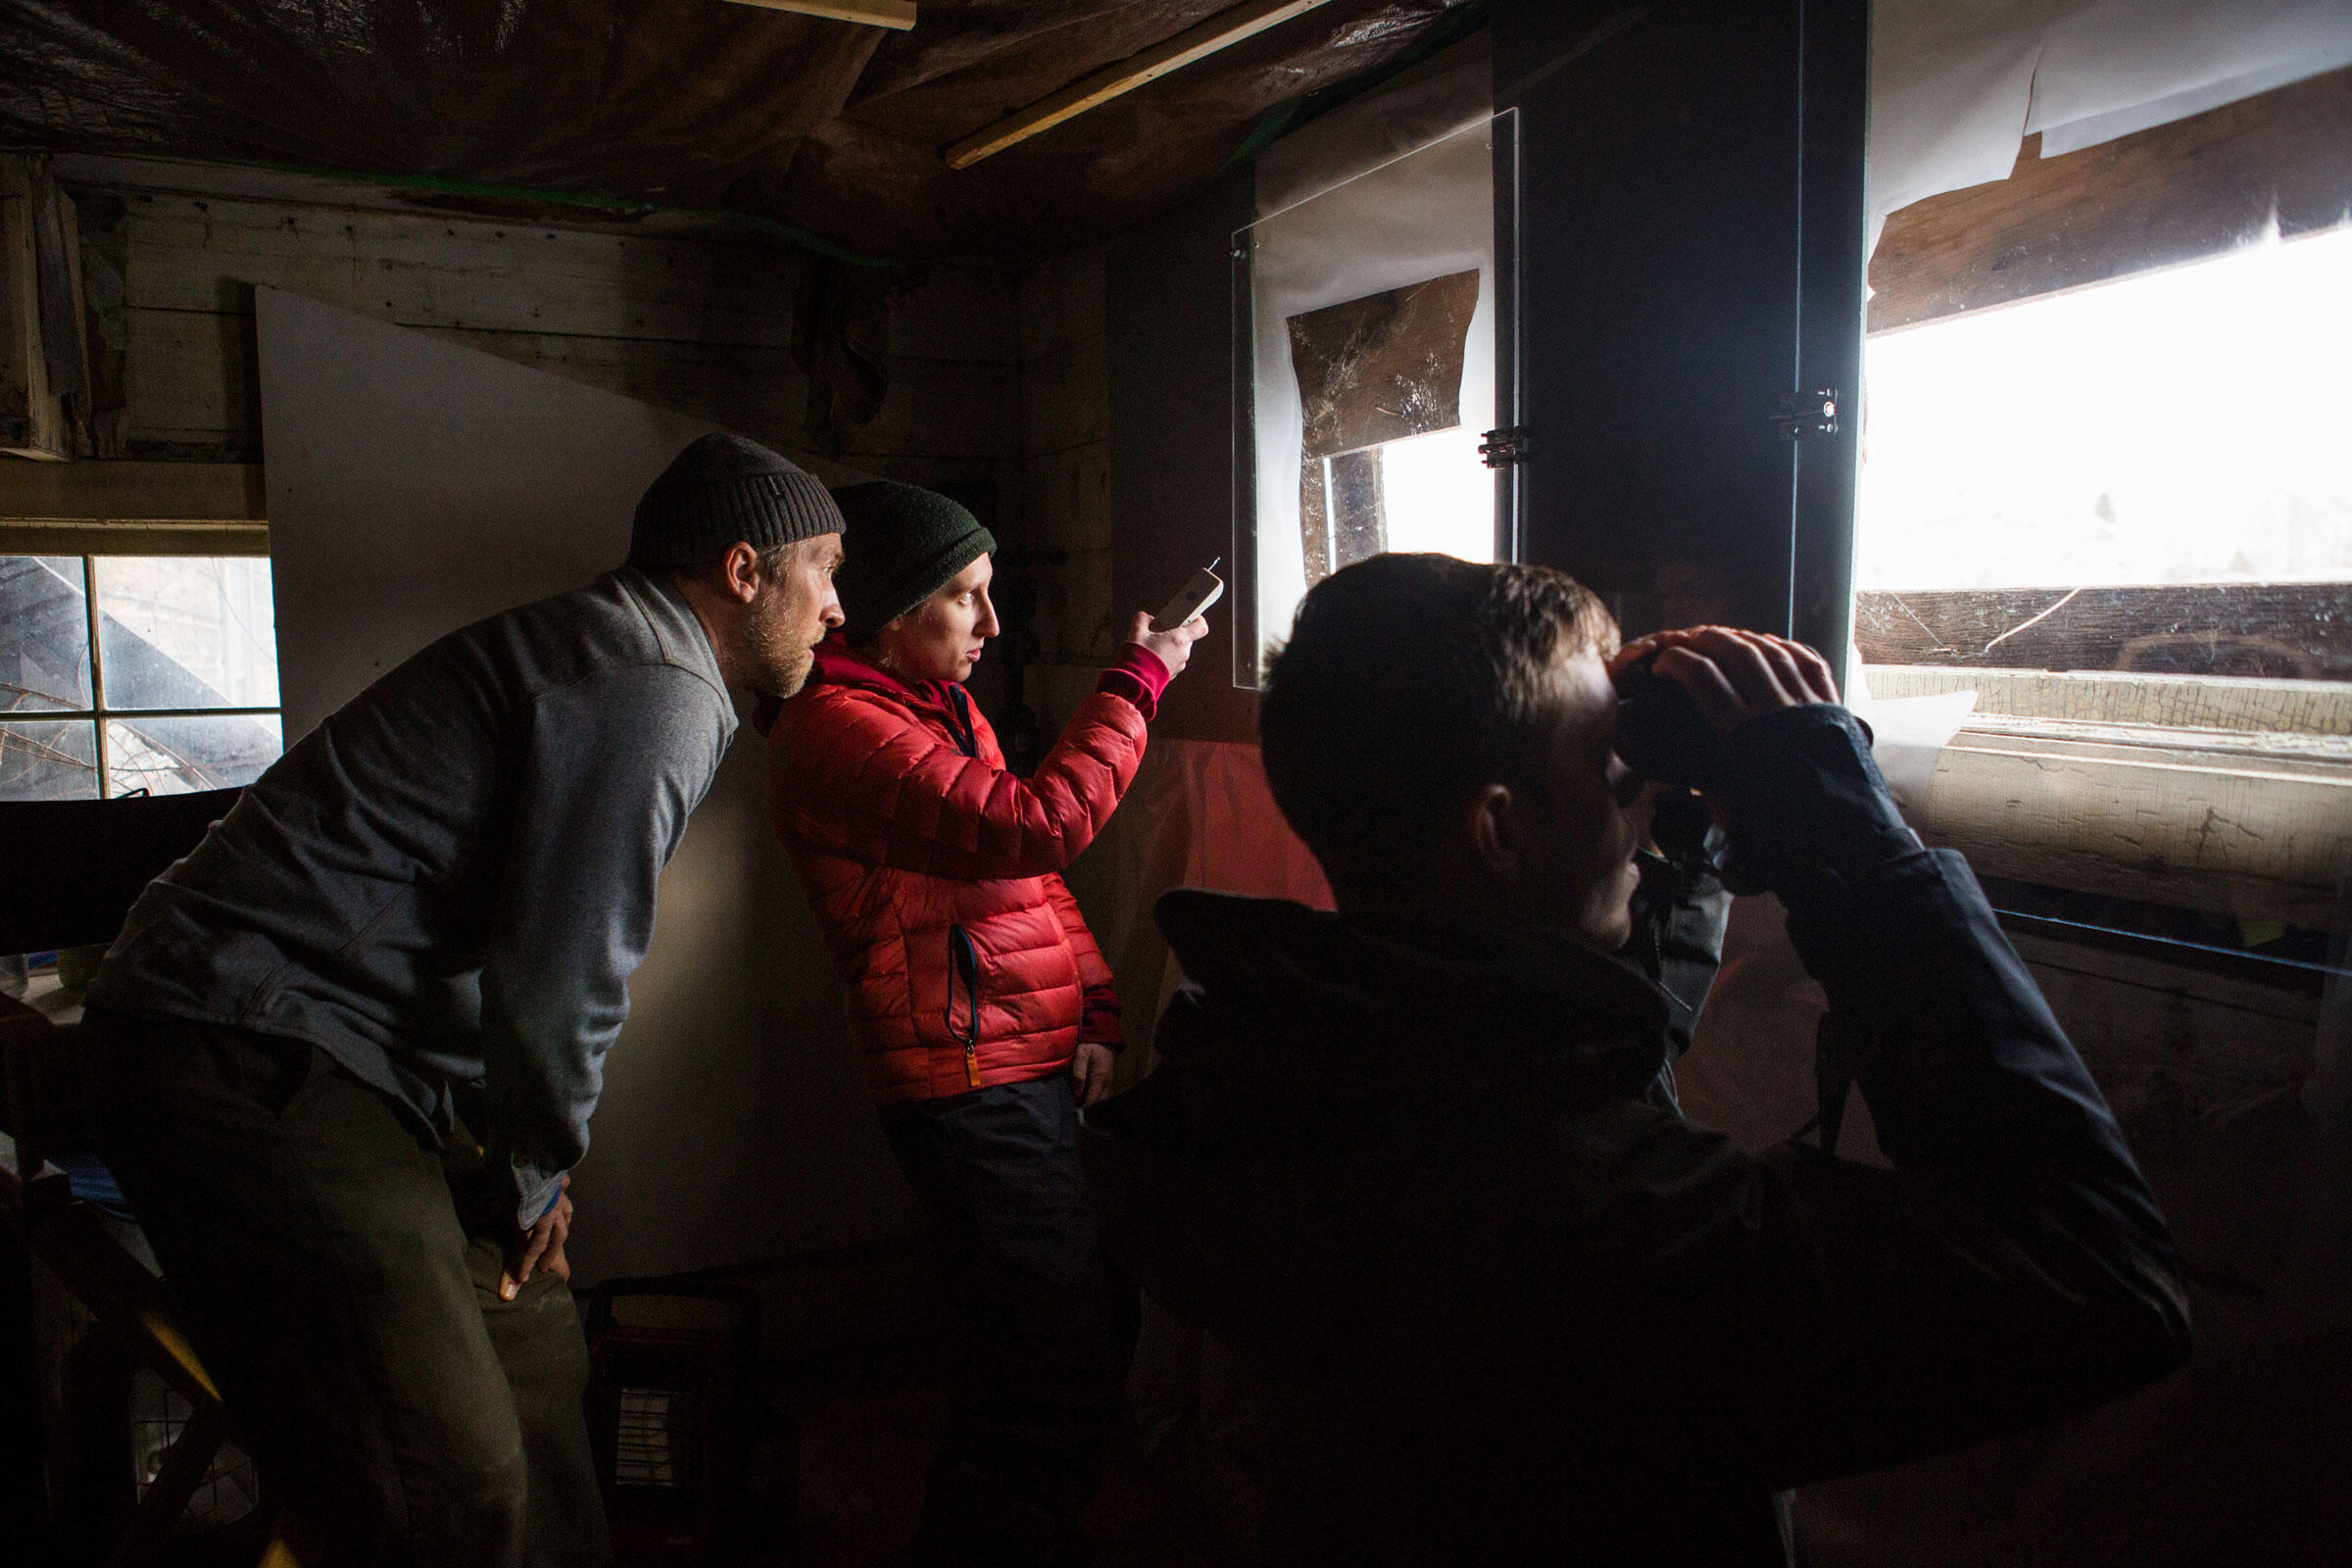 Hidden inside a former carriage house, RMVI's Eric Rasmussen, Mary Scofield, and Brian Busby look for eagles. Celia Talbot Tobin